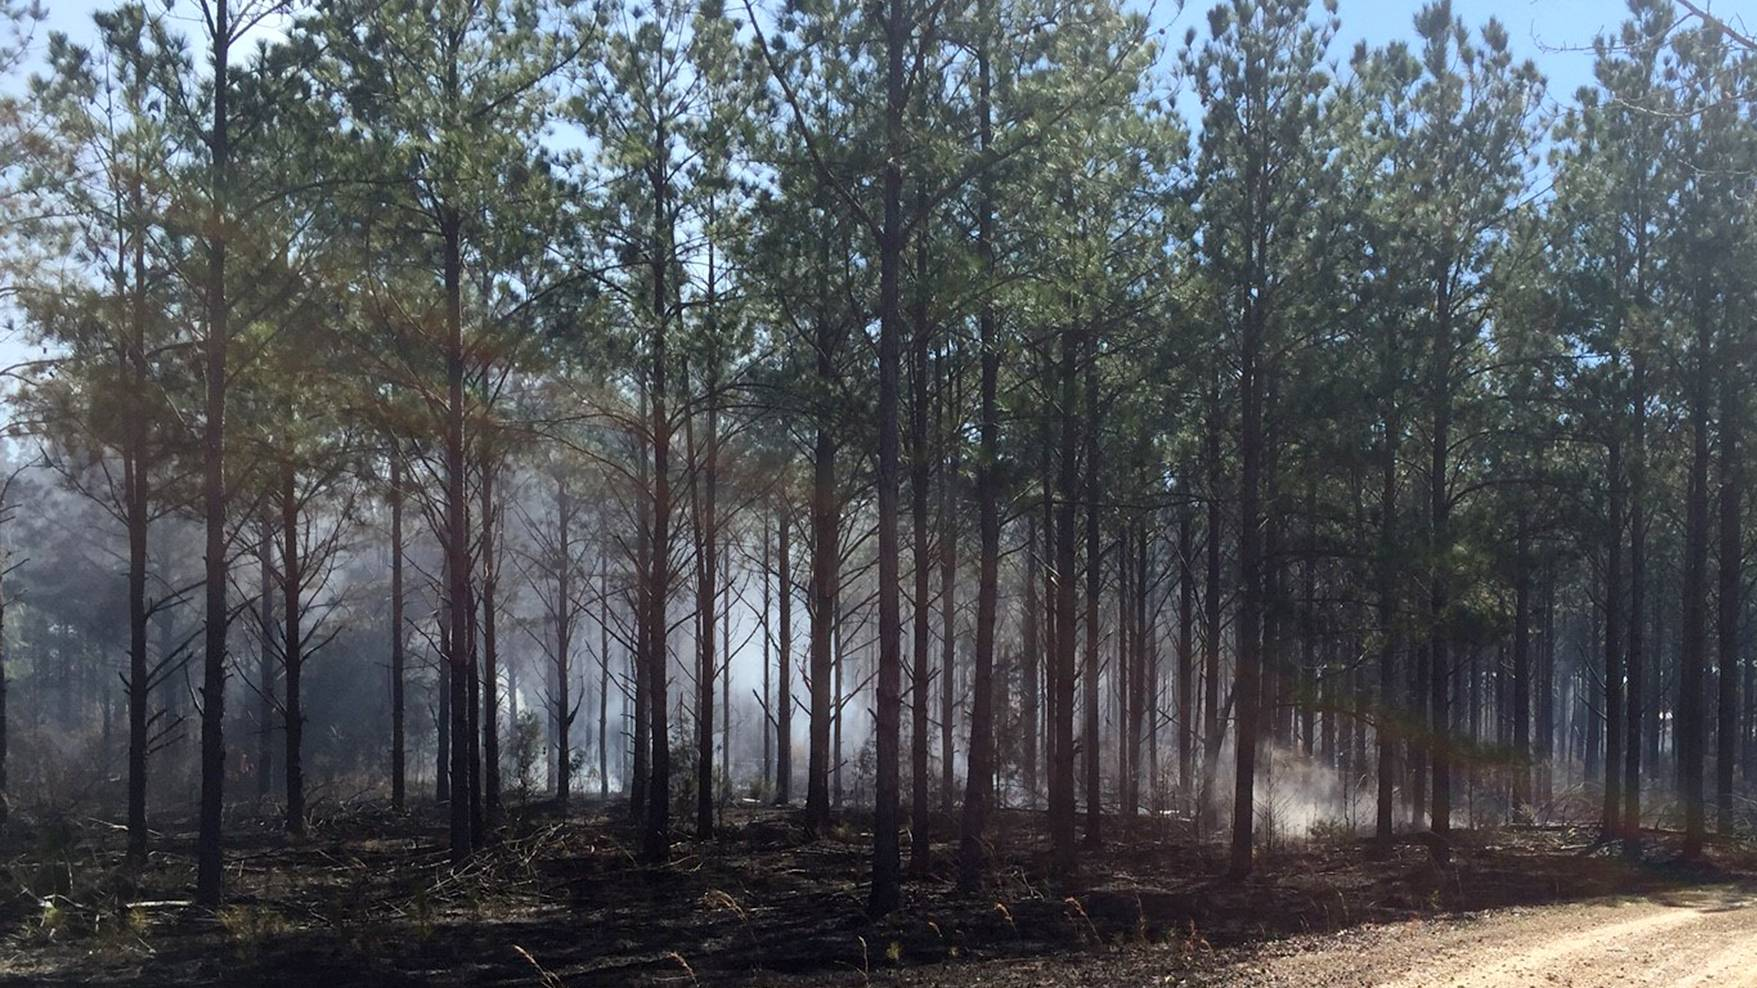 Prescribed burns can reduce the fuel available in forest land, significantly lessening the risk of an unmanaged forest fire. (Submitted Photo by Matt Walters)